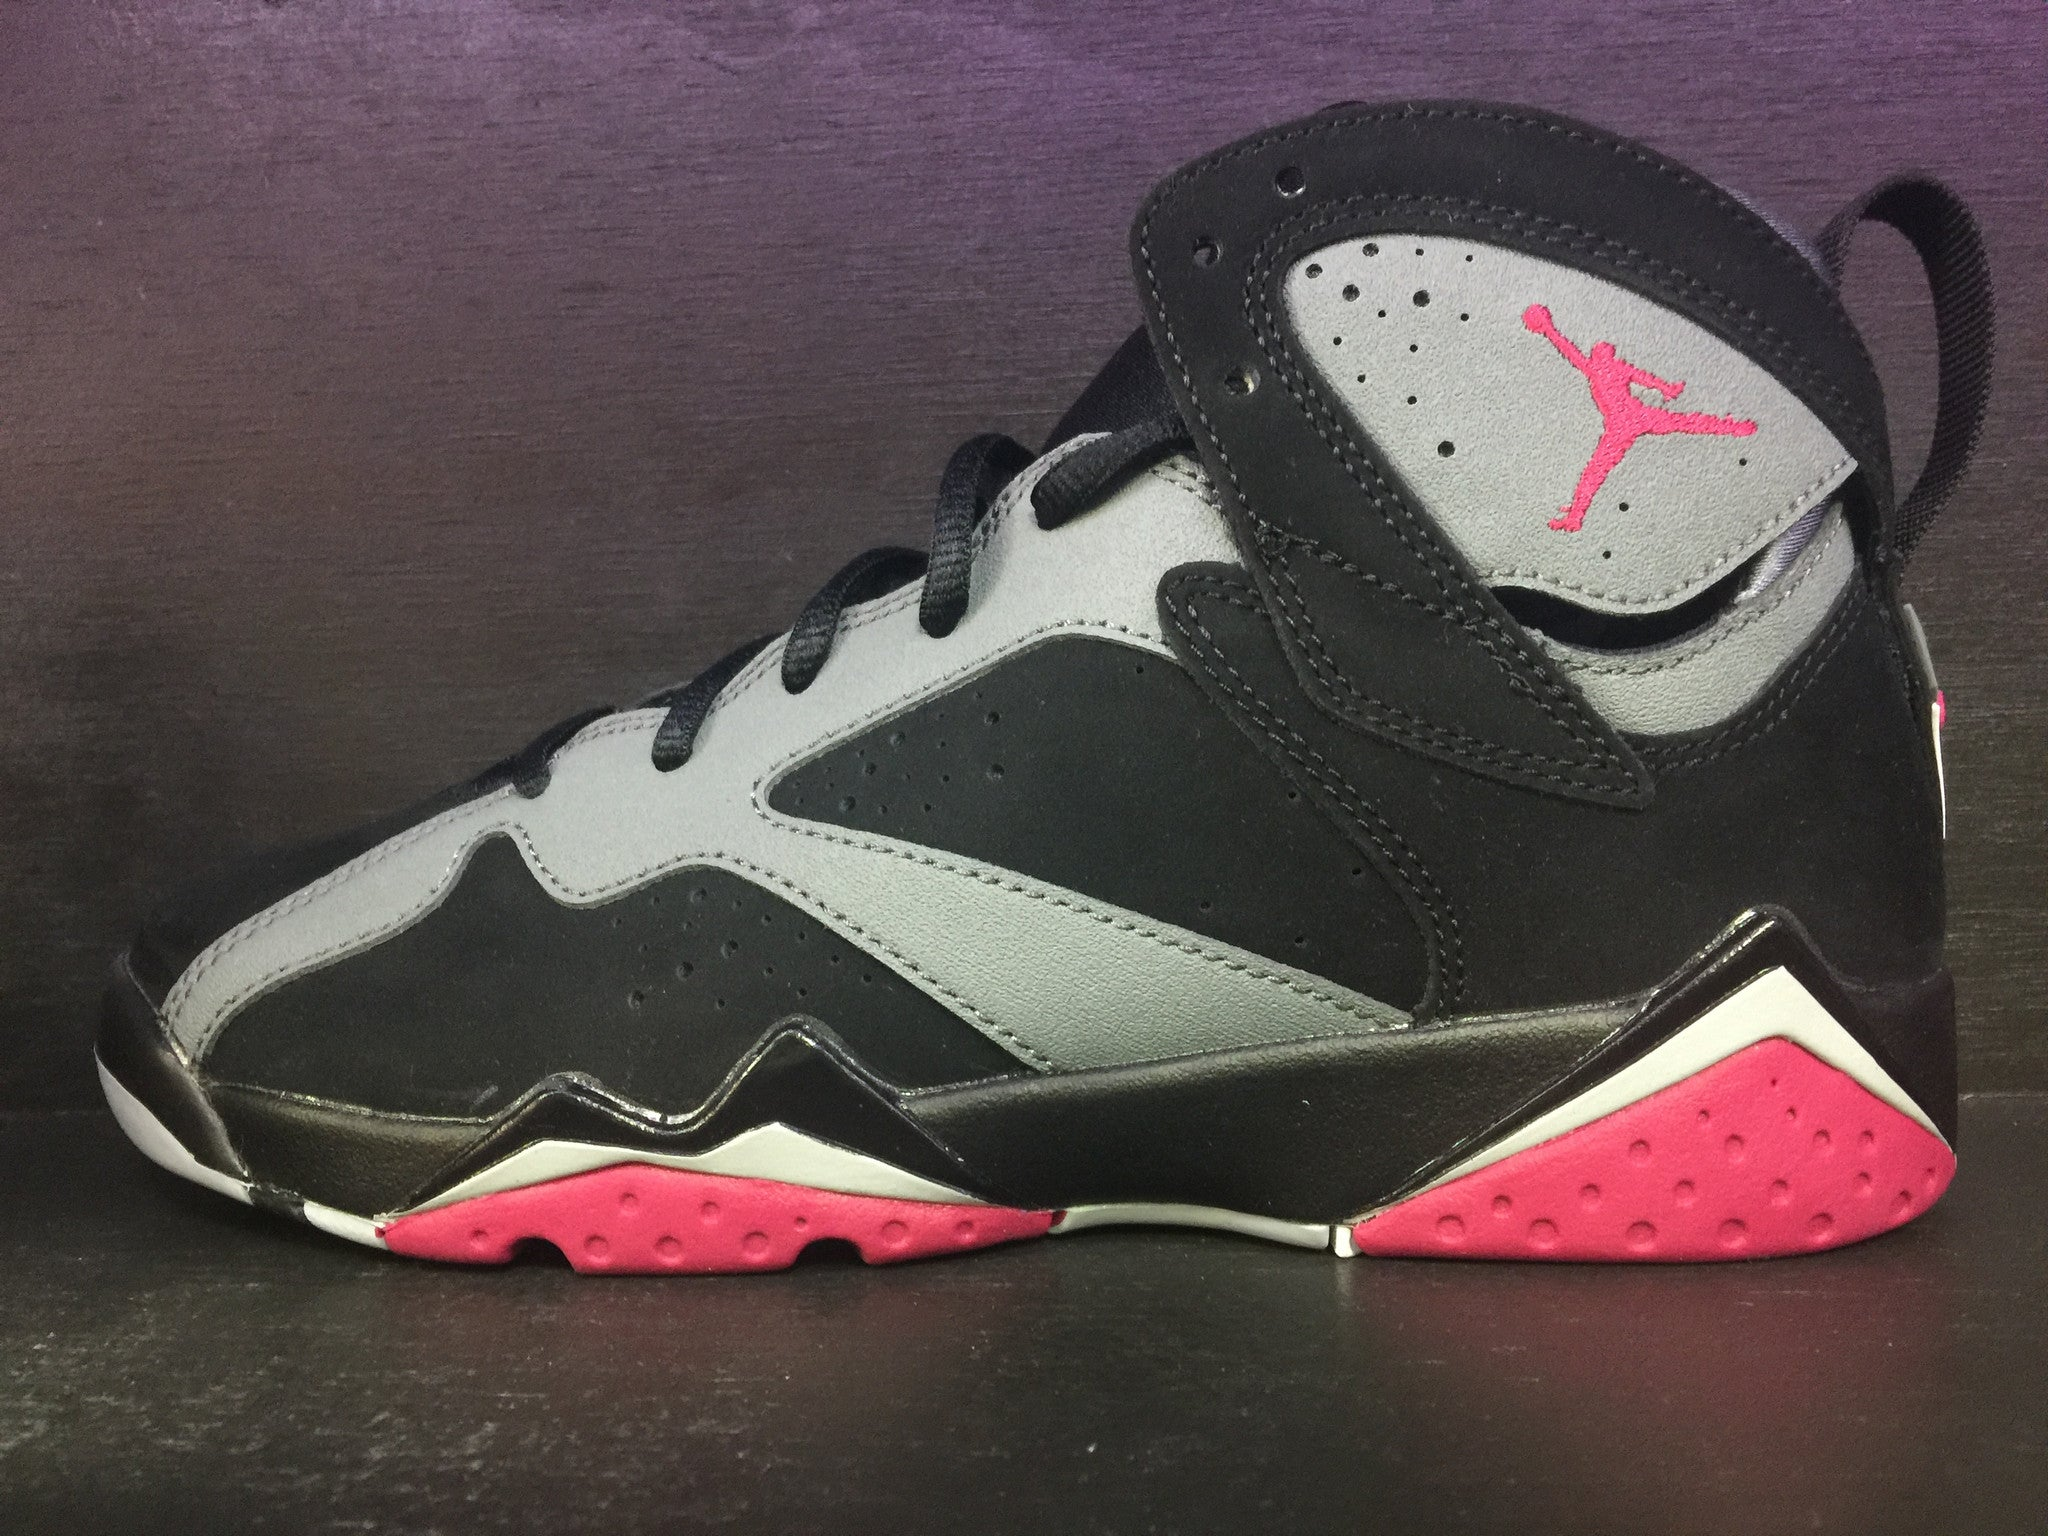 Air Jordan 7 Retro BG 'Fuchsia